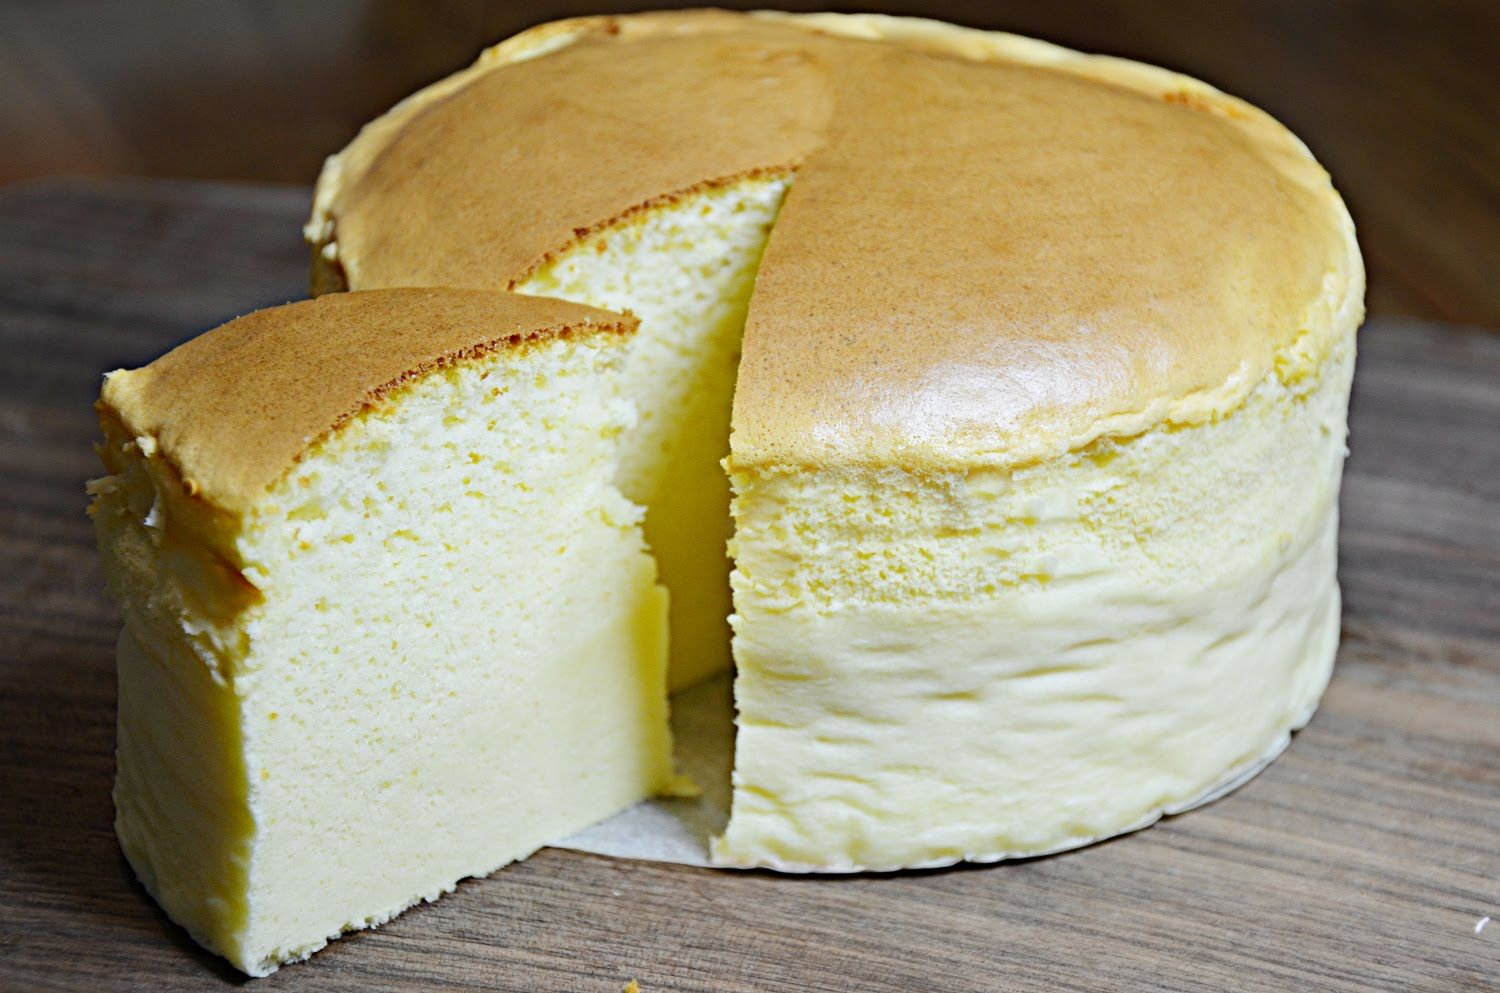 Japanese Jiggly Cake Recipes: How To Make Japanese Cheese Cake